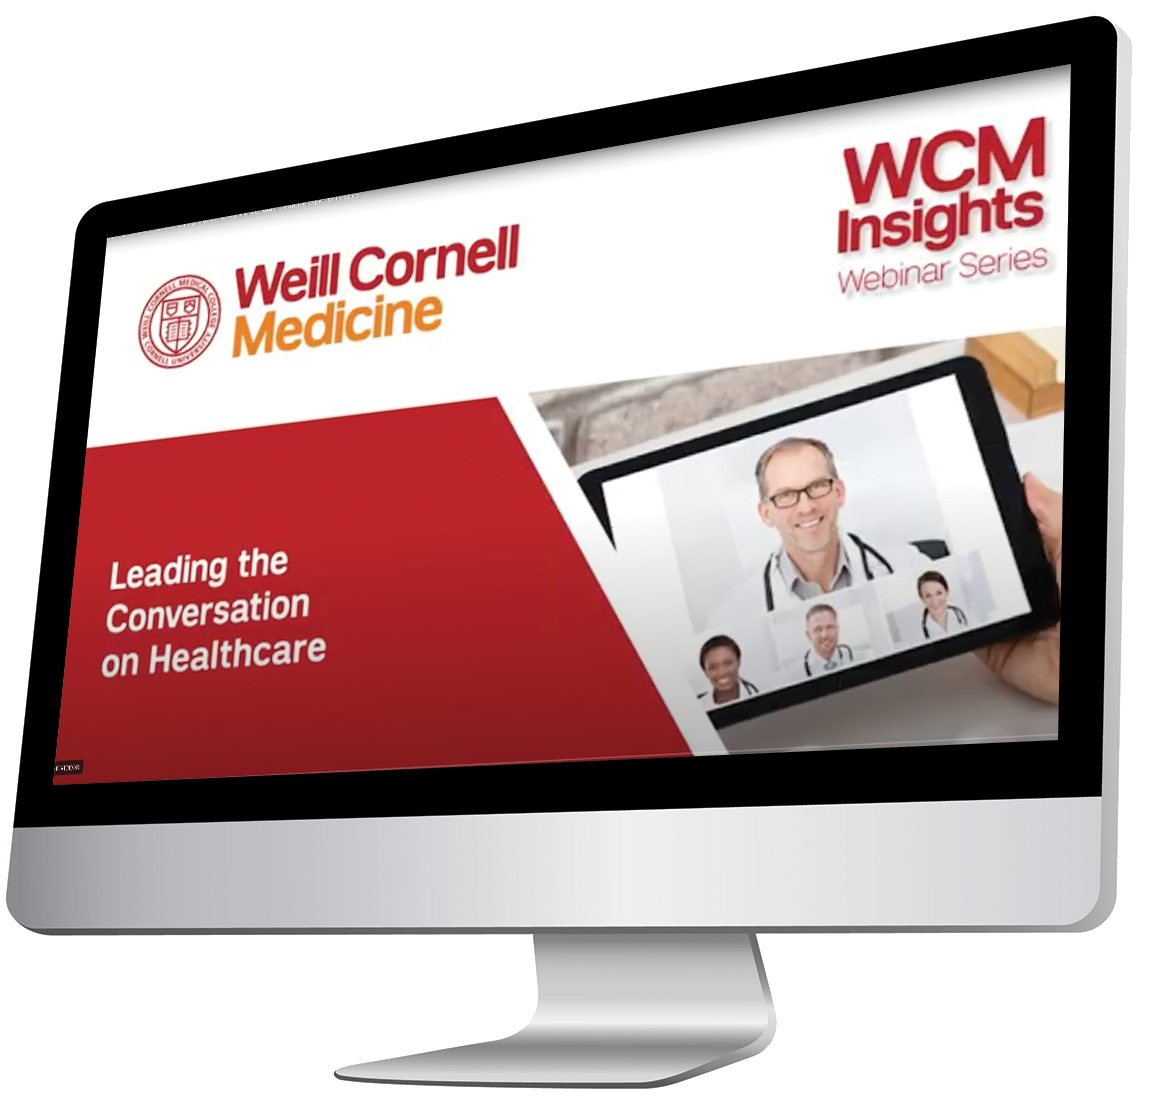 WCM Insights image